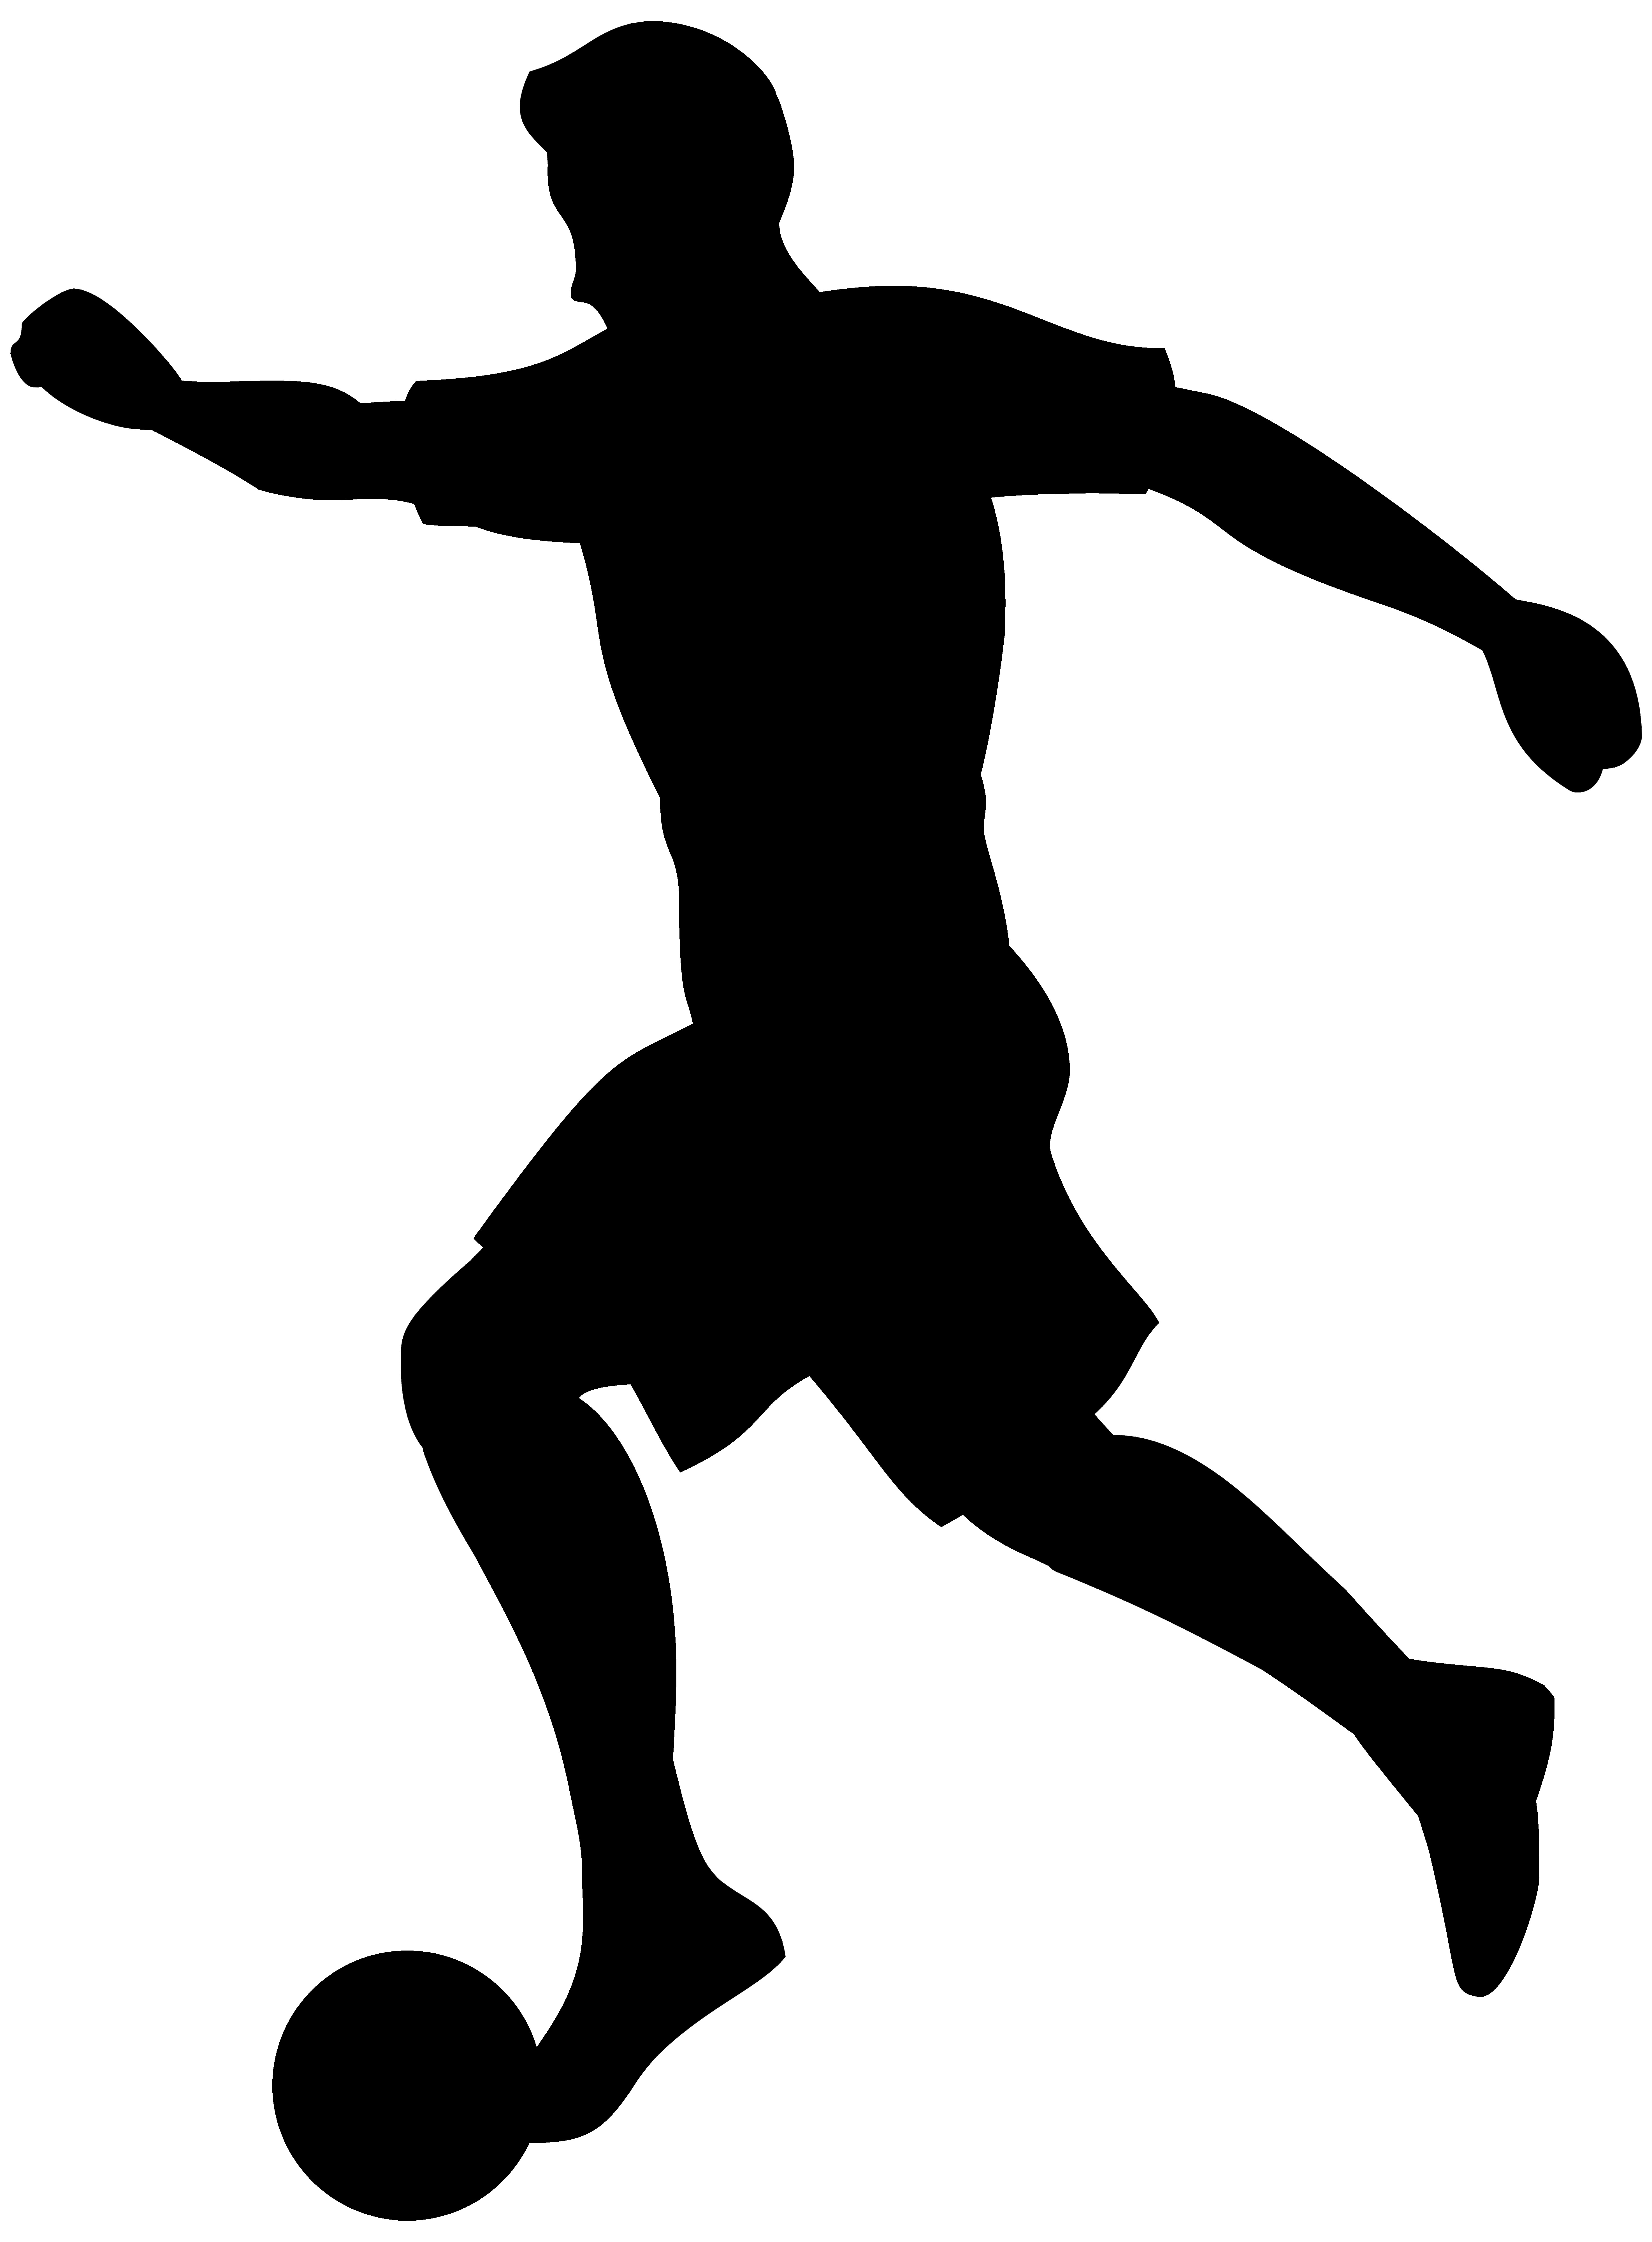 5896x8000 Footballer Silhouette Png Transparent Clip Art Image Gallery